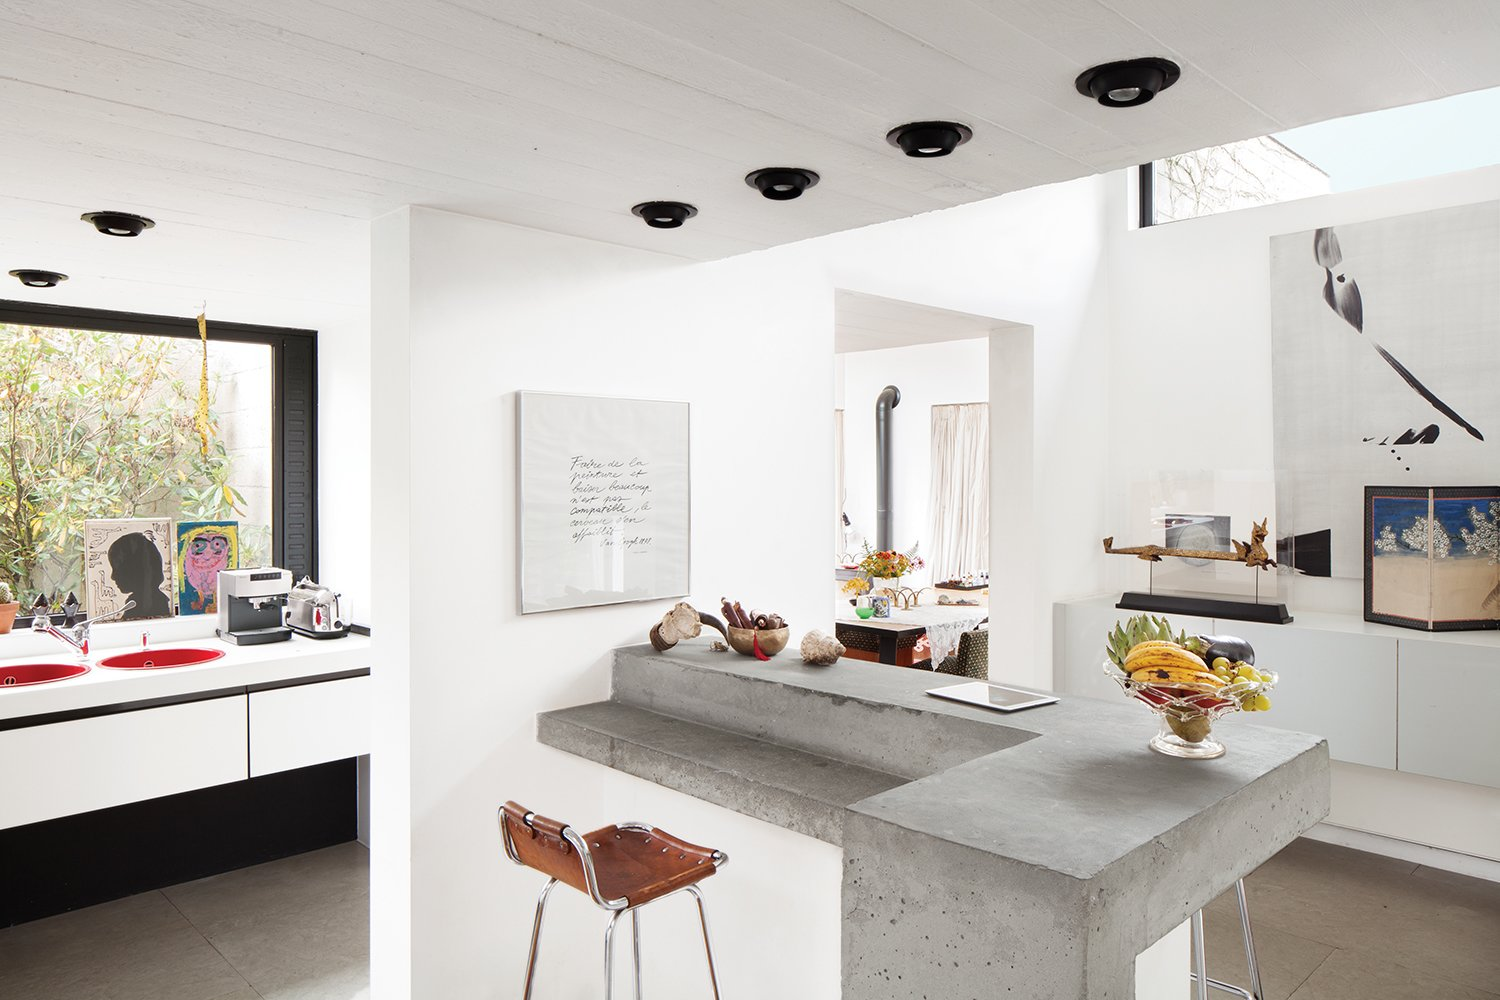 Kitchen, Concrete Counter, and Recessed Lighting Vandemoortele worked with designer Renaud de Poorter on the interior renovations, which included opening up the heavy structure with the help of new windows and doors to the outside. They didn't want to gut the space, and kept existing decorative motifs like the dining room's circa-1975 painted cupboard.  Photo 4 of 9 in A Concrete Home in Rural Belgium